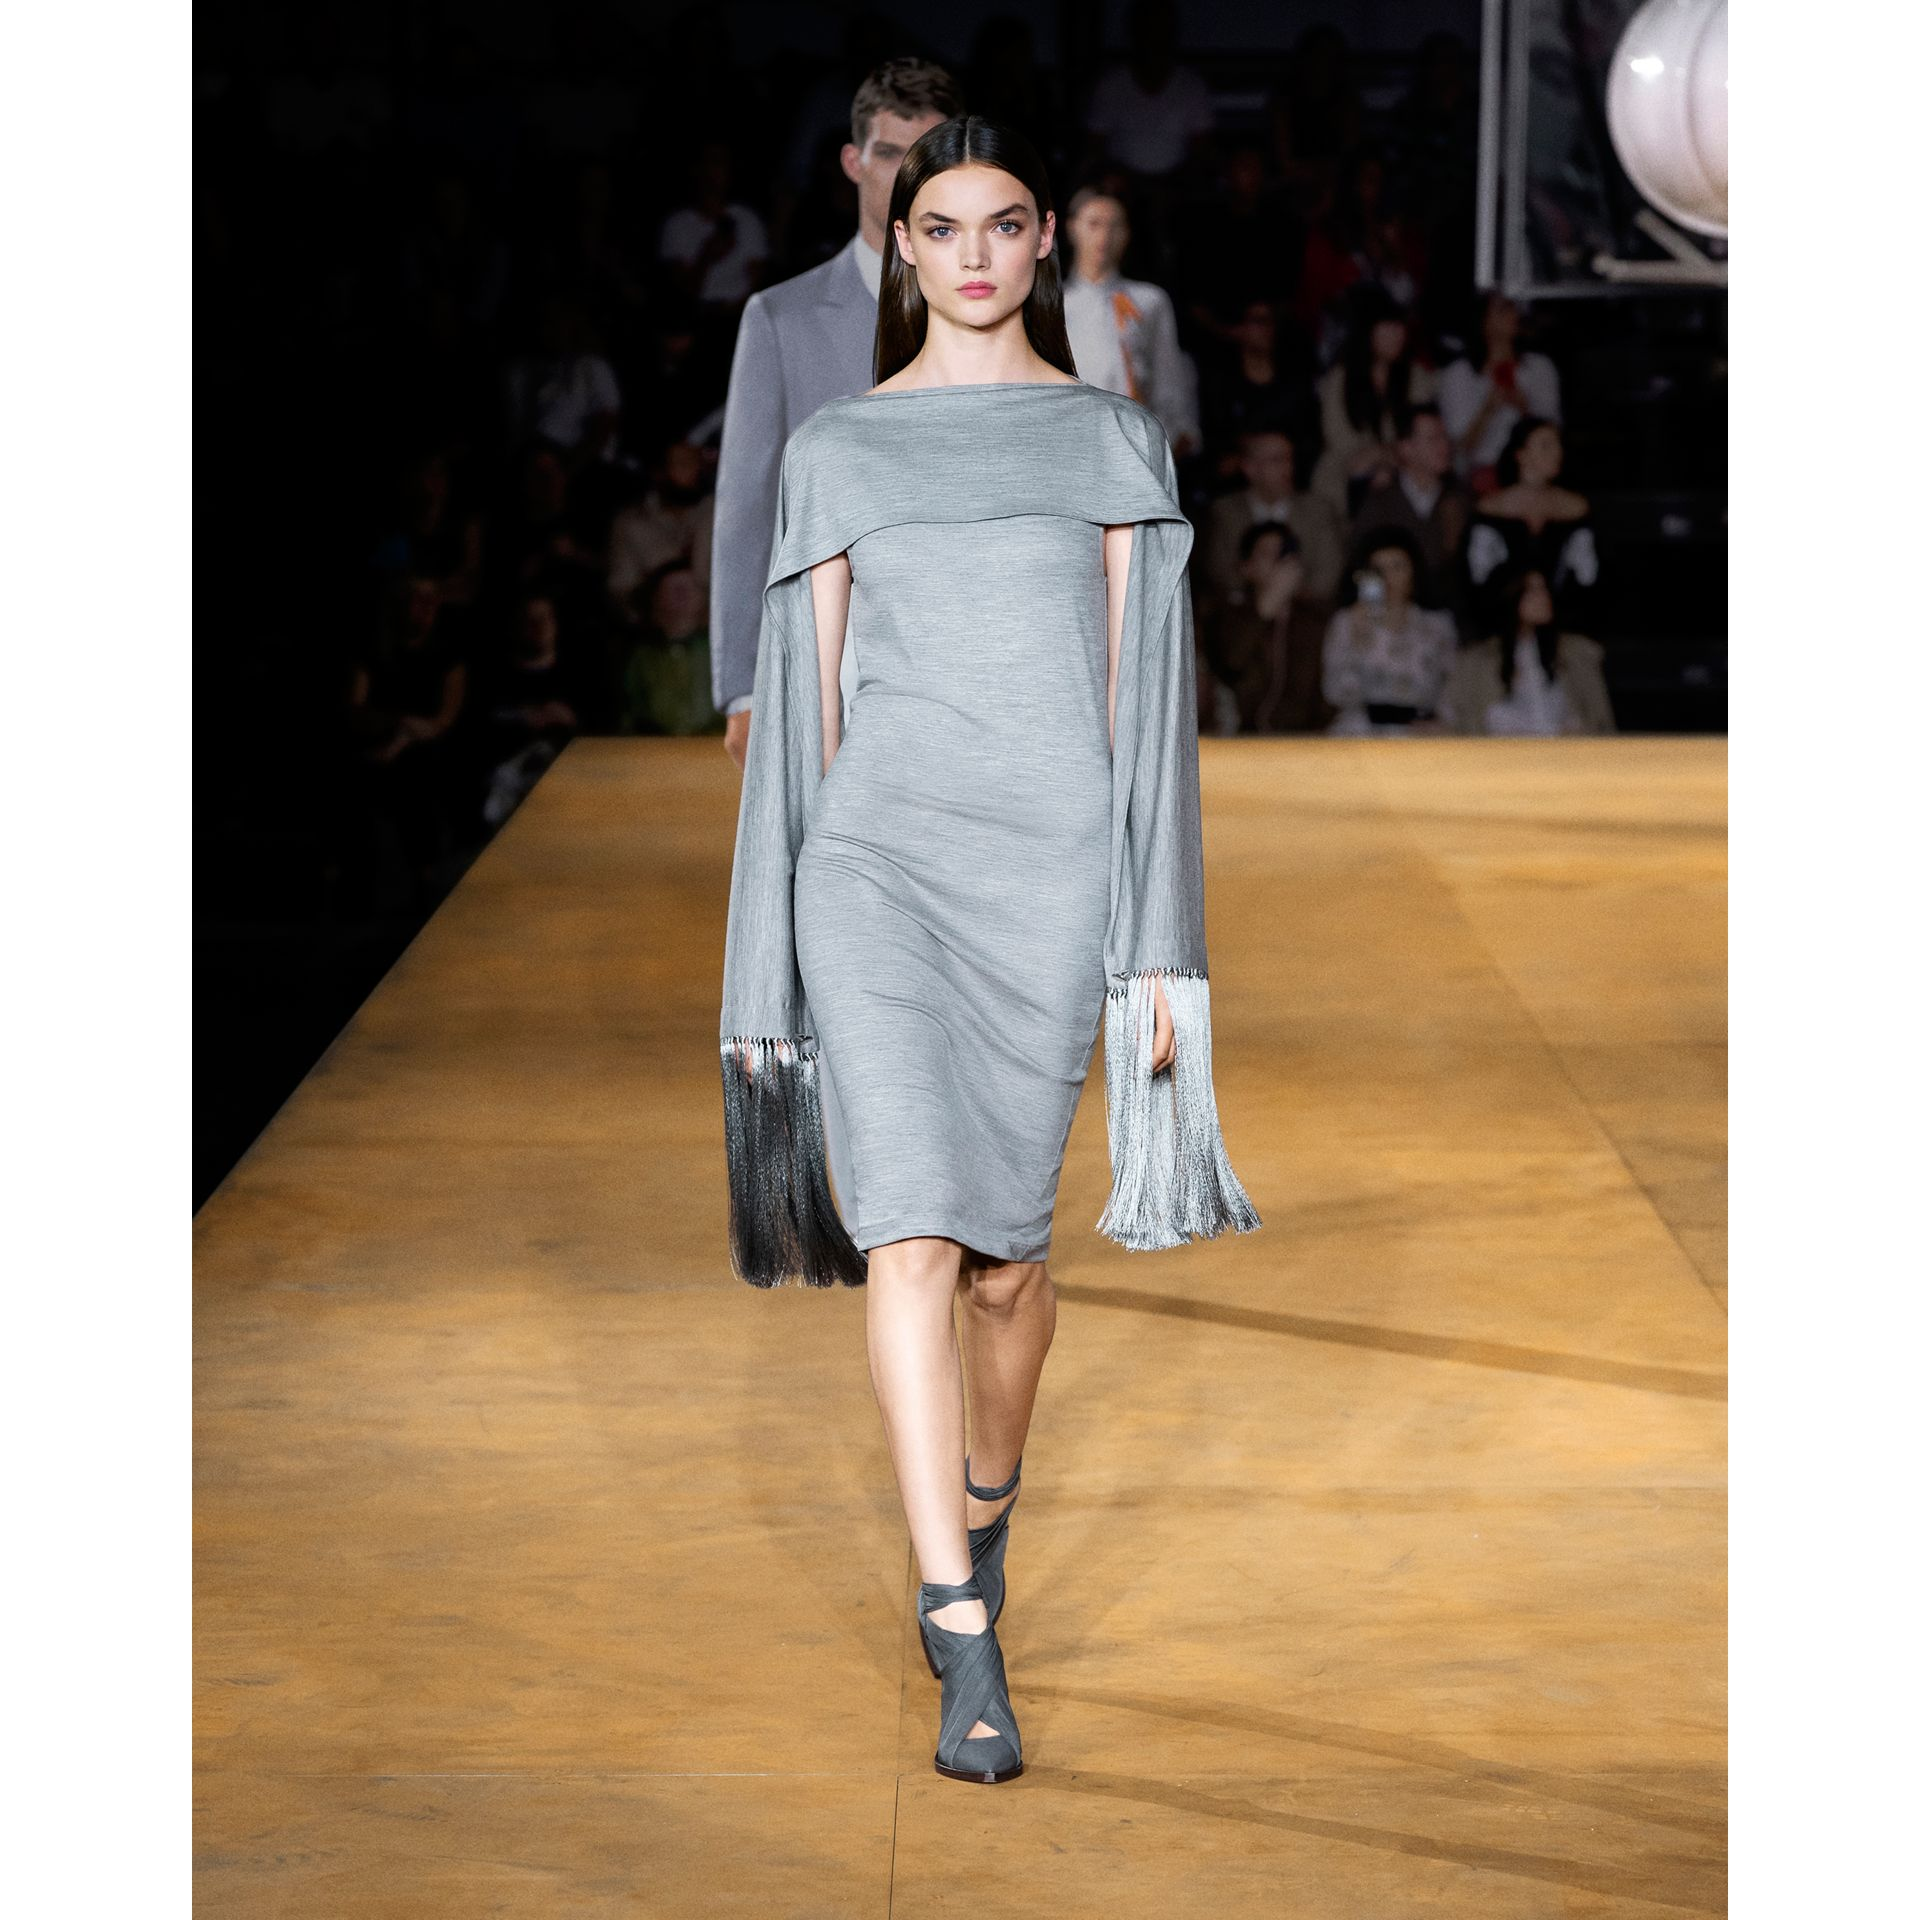 Merino Wool Sleeveless Dress with Fringed Capelet in Cloud Grey - Women | Burberry Australia - gallery image 2